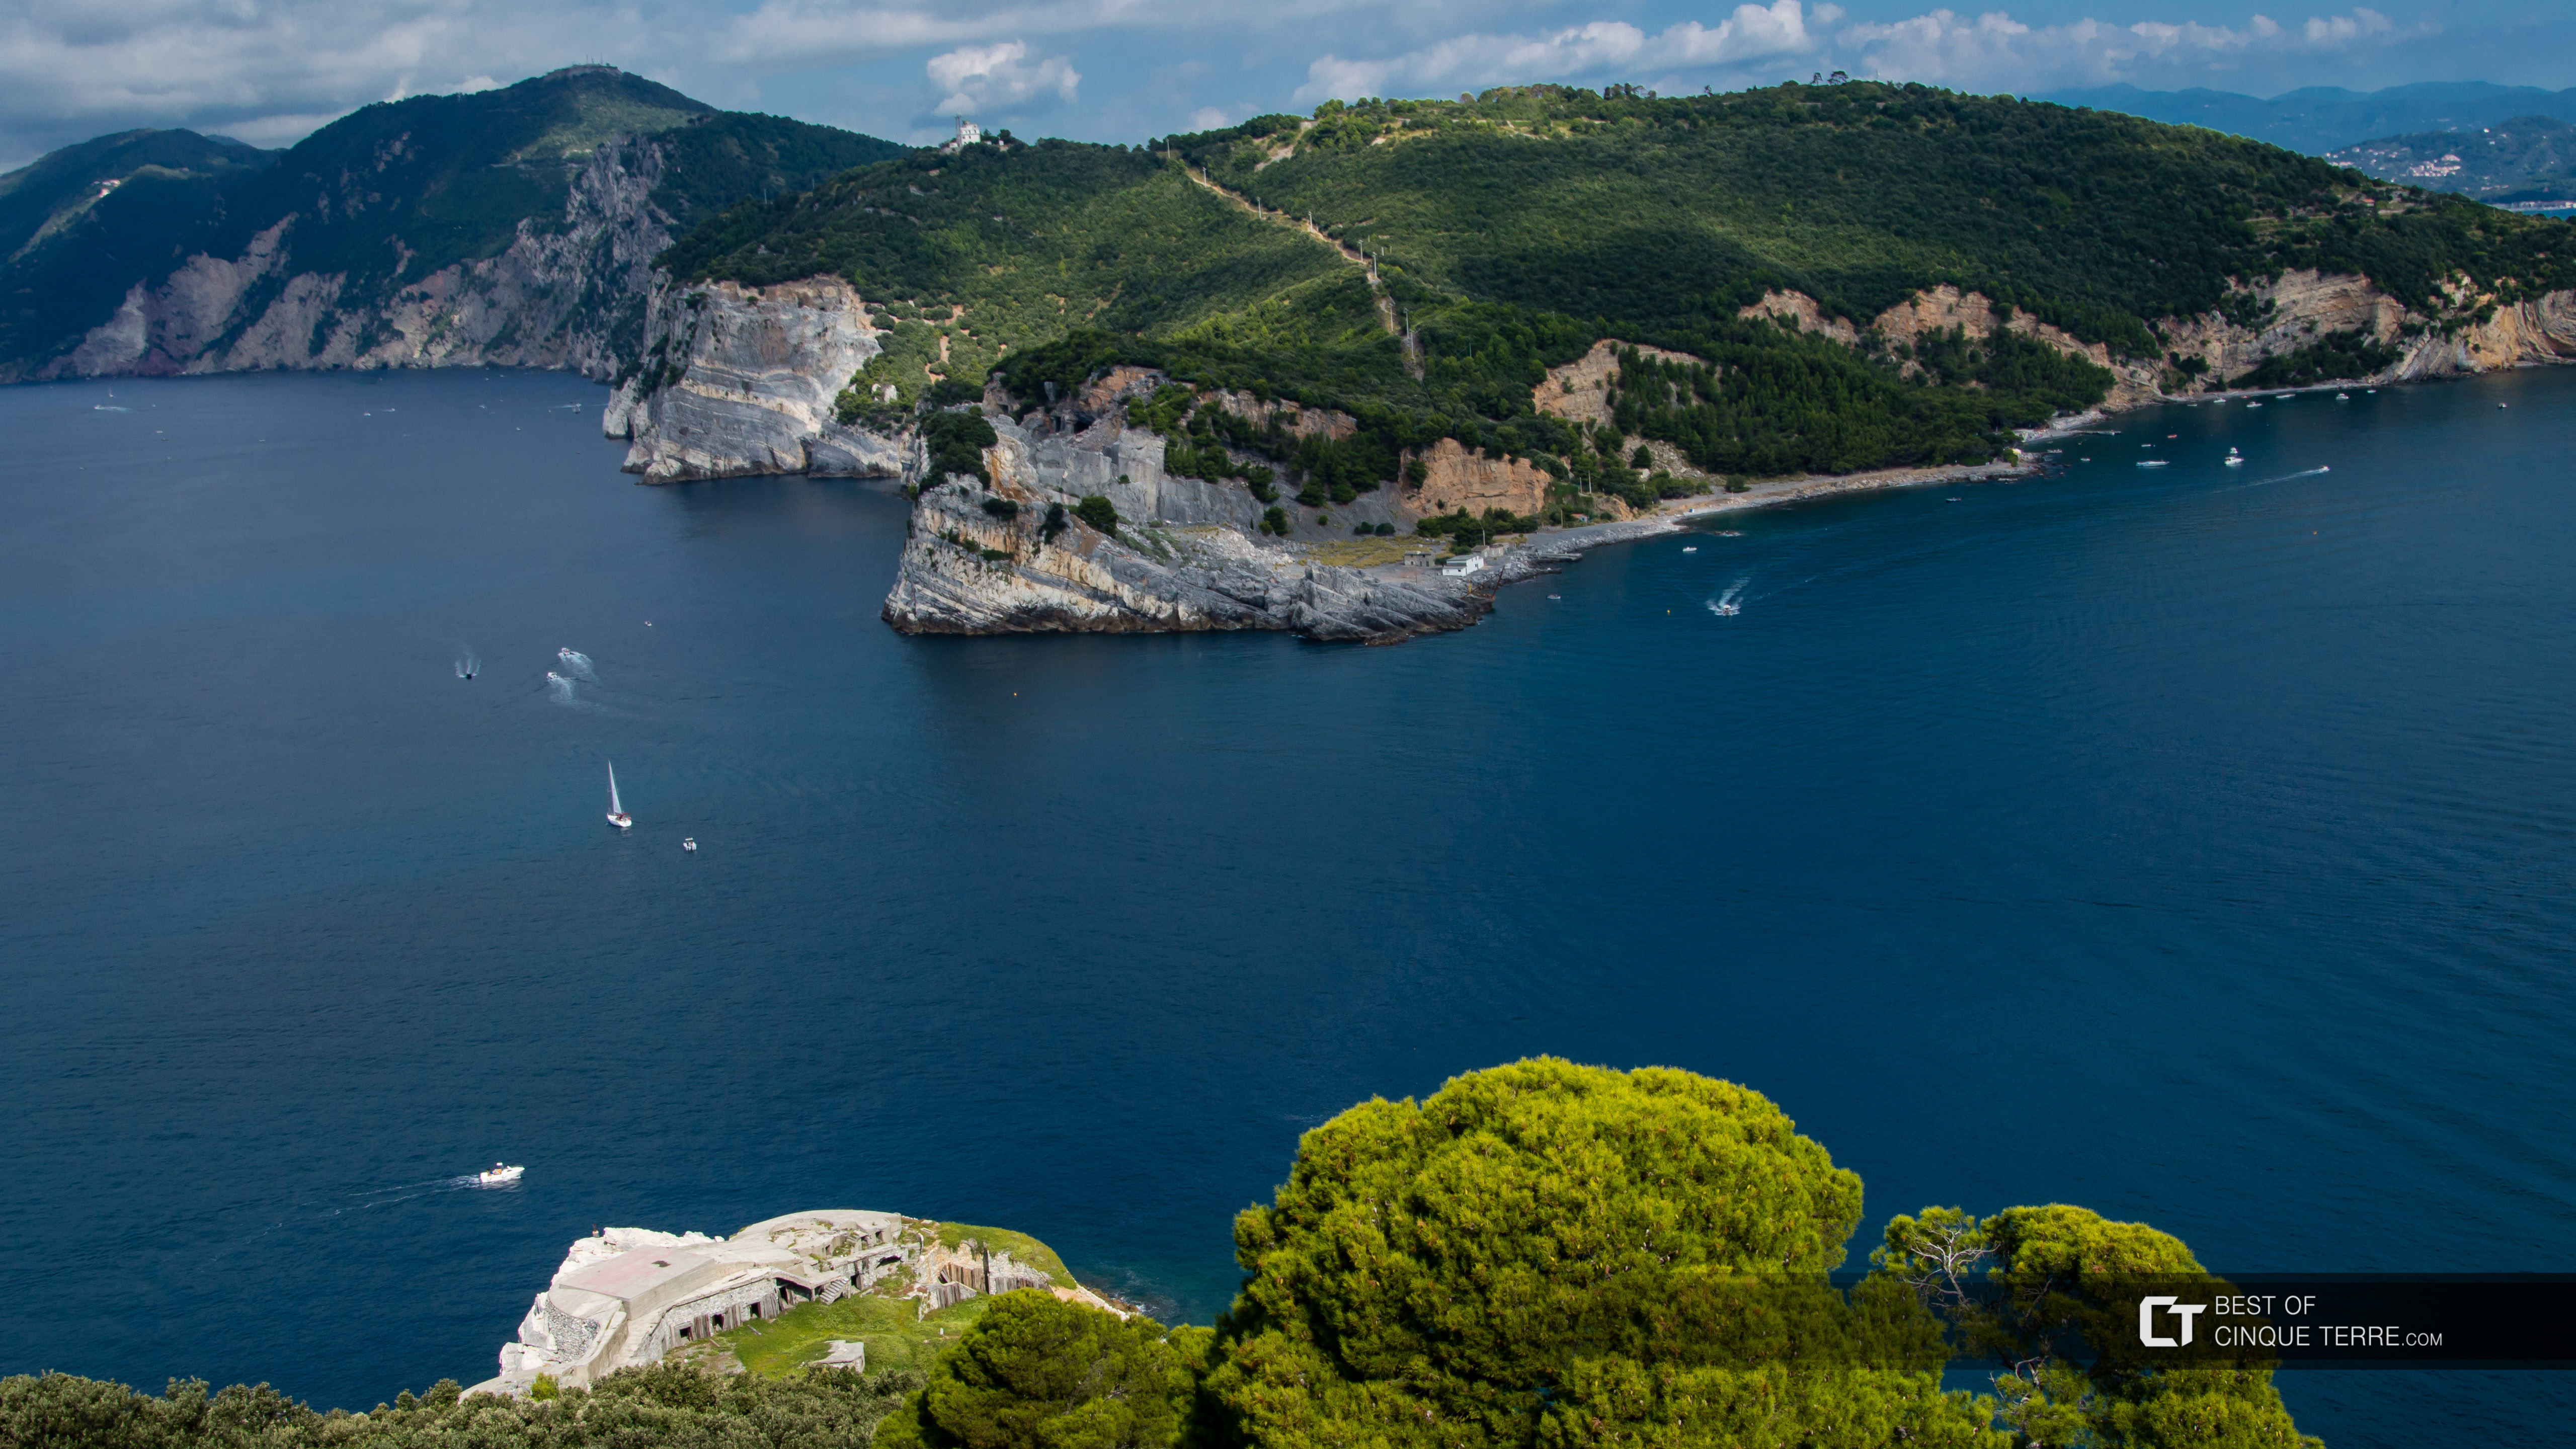 Palmaria Island from the lighthouse on the island of Tino, Portovenere, Italy